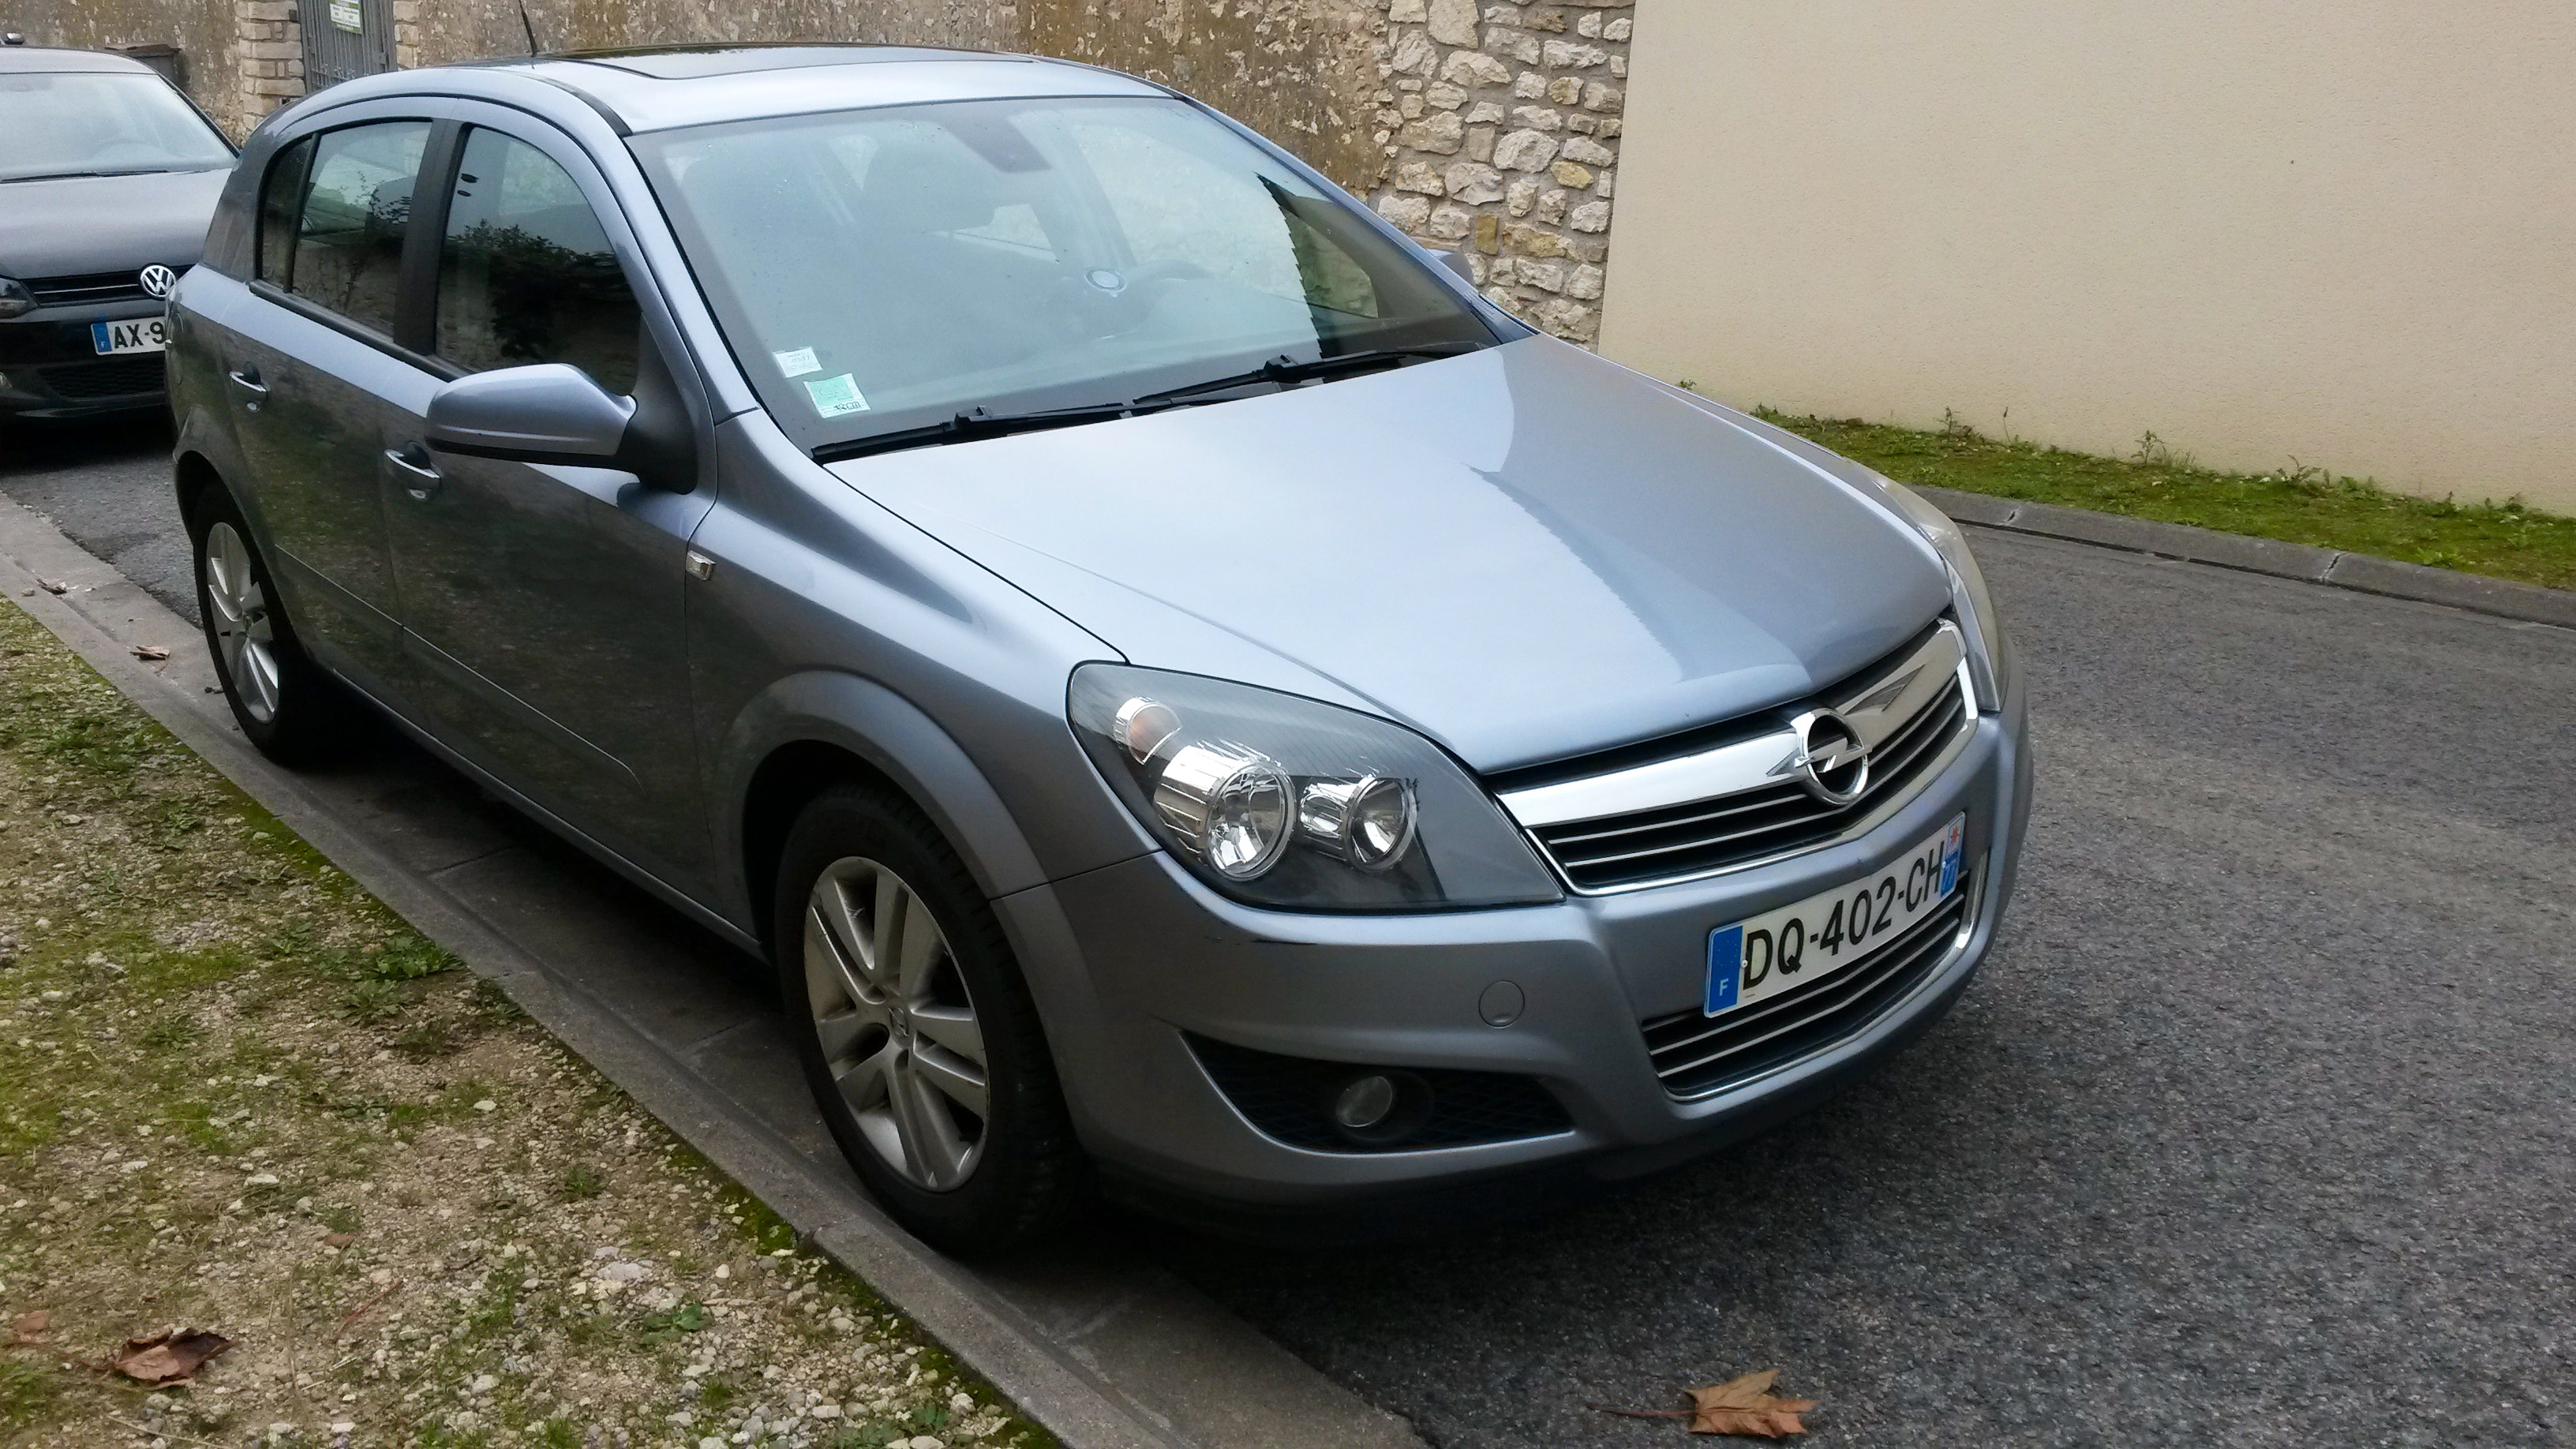 OPEL  ASTRA 1.7 CDTI PANORAMIQUE, 2007, Diesel